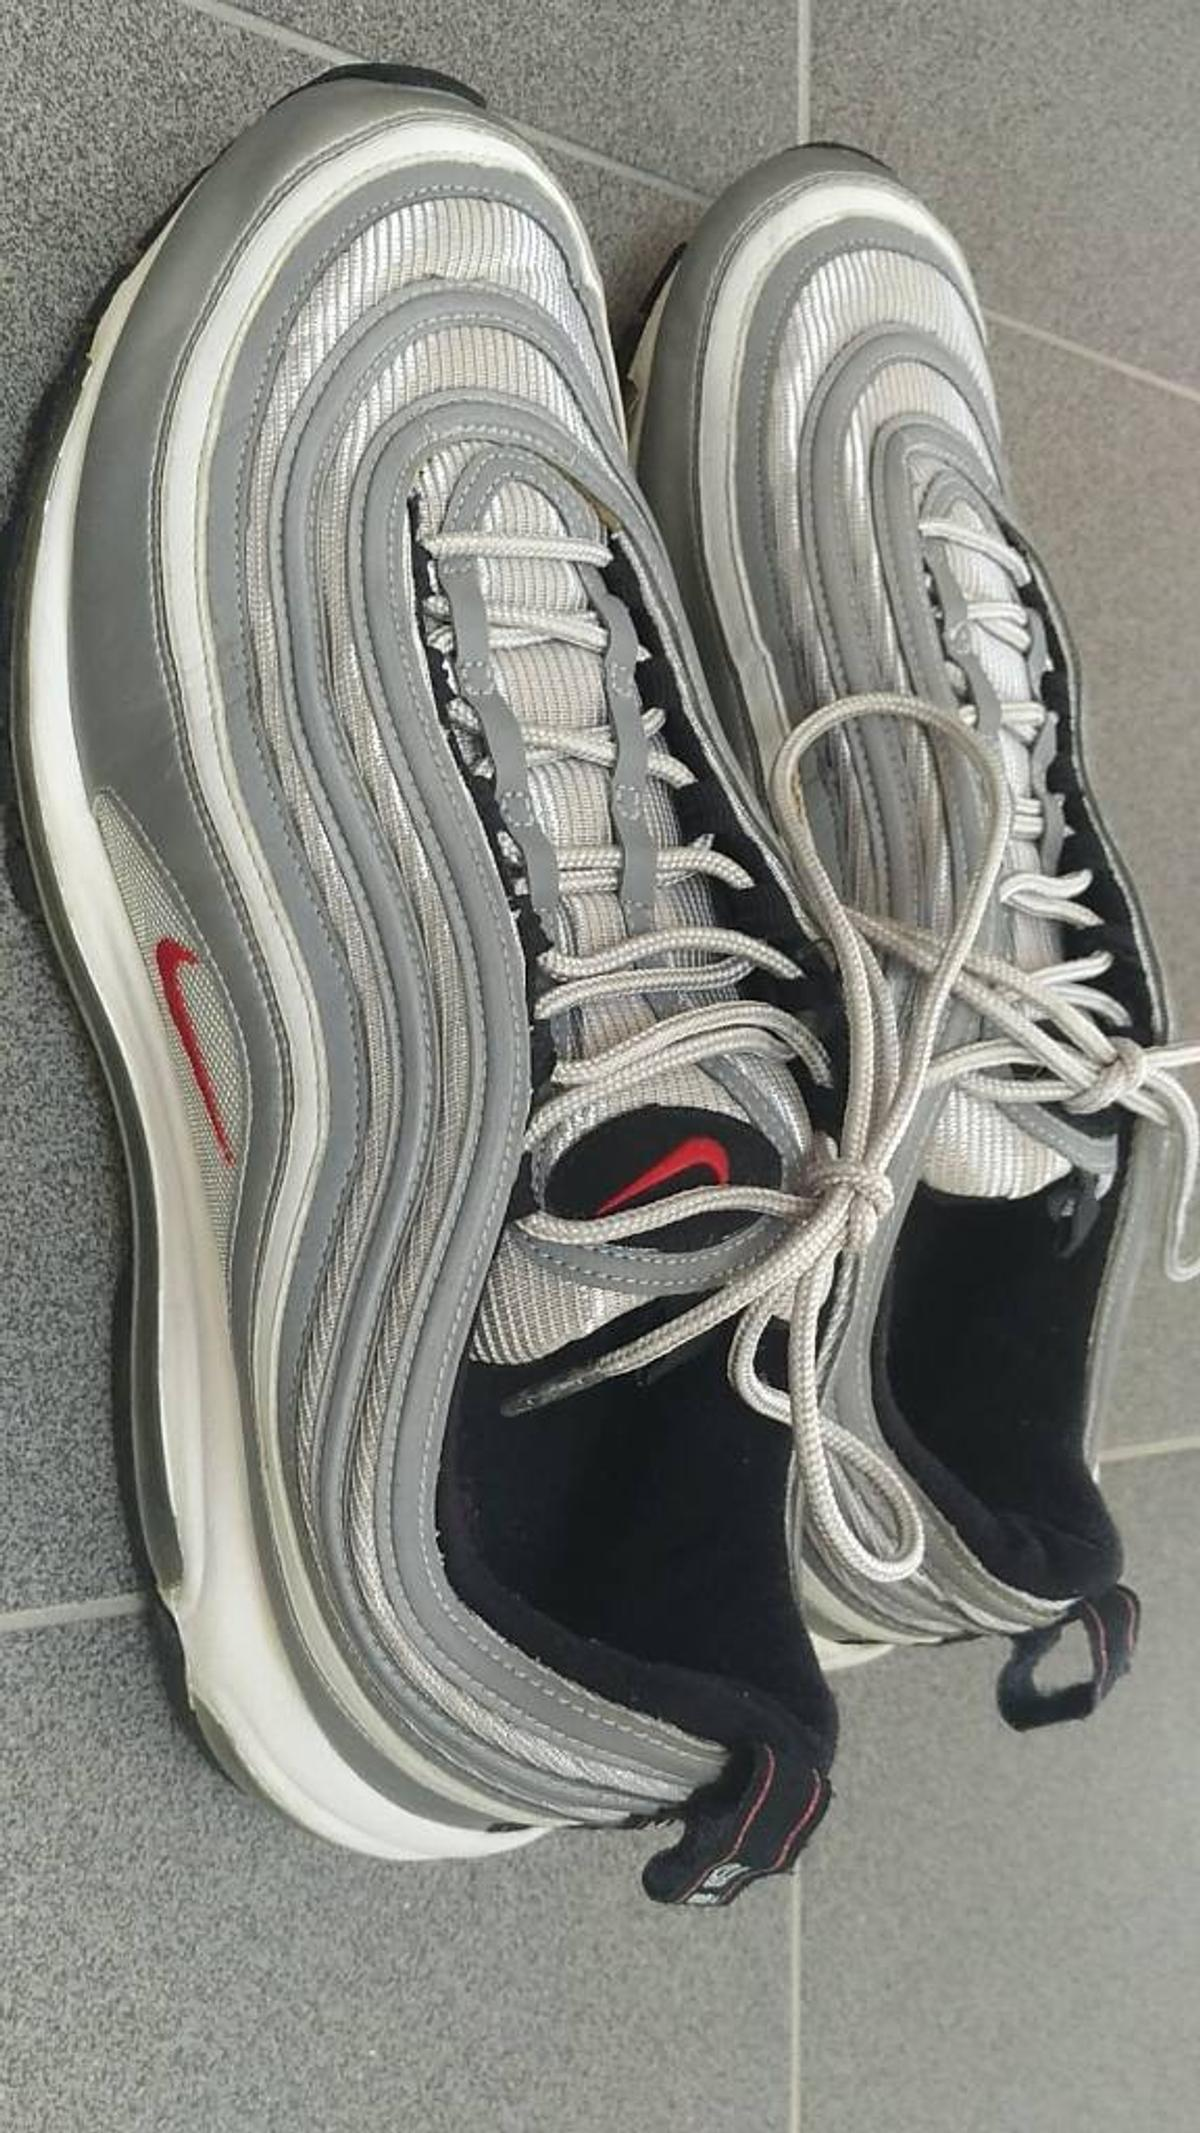 Nike air max 97 in grösse 47 in 53757 Sankt Augustin for